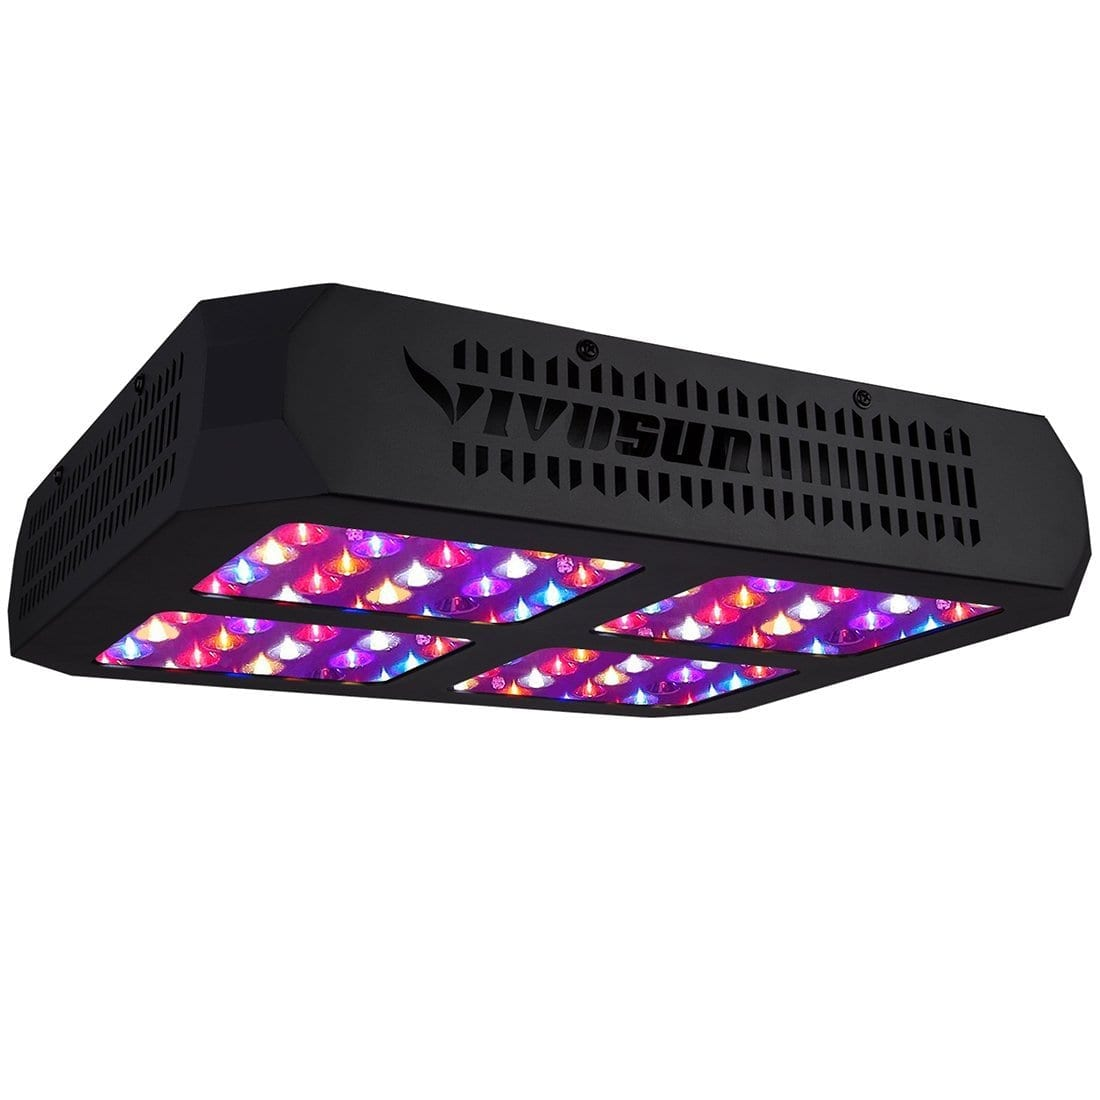 A Complete Guide On Choosing The Best LED Grow Lights